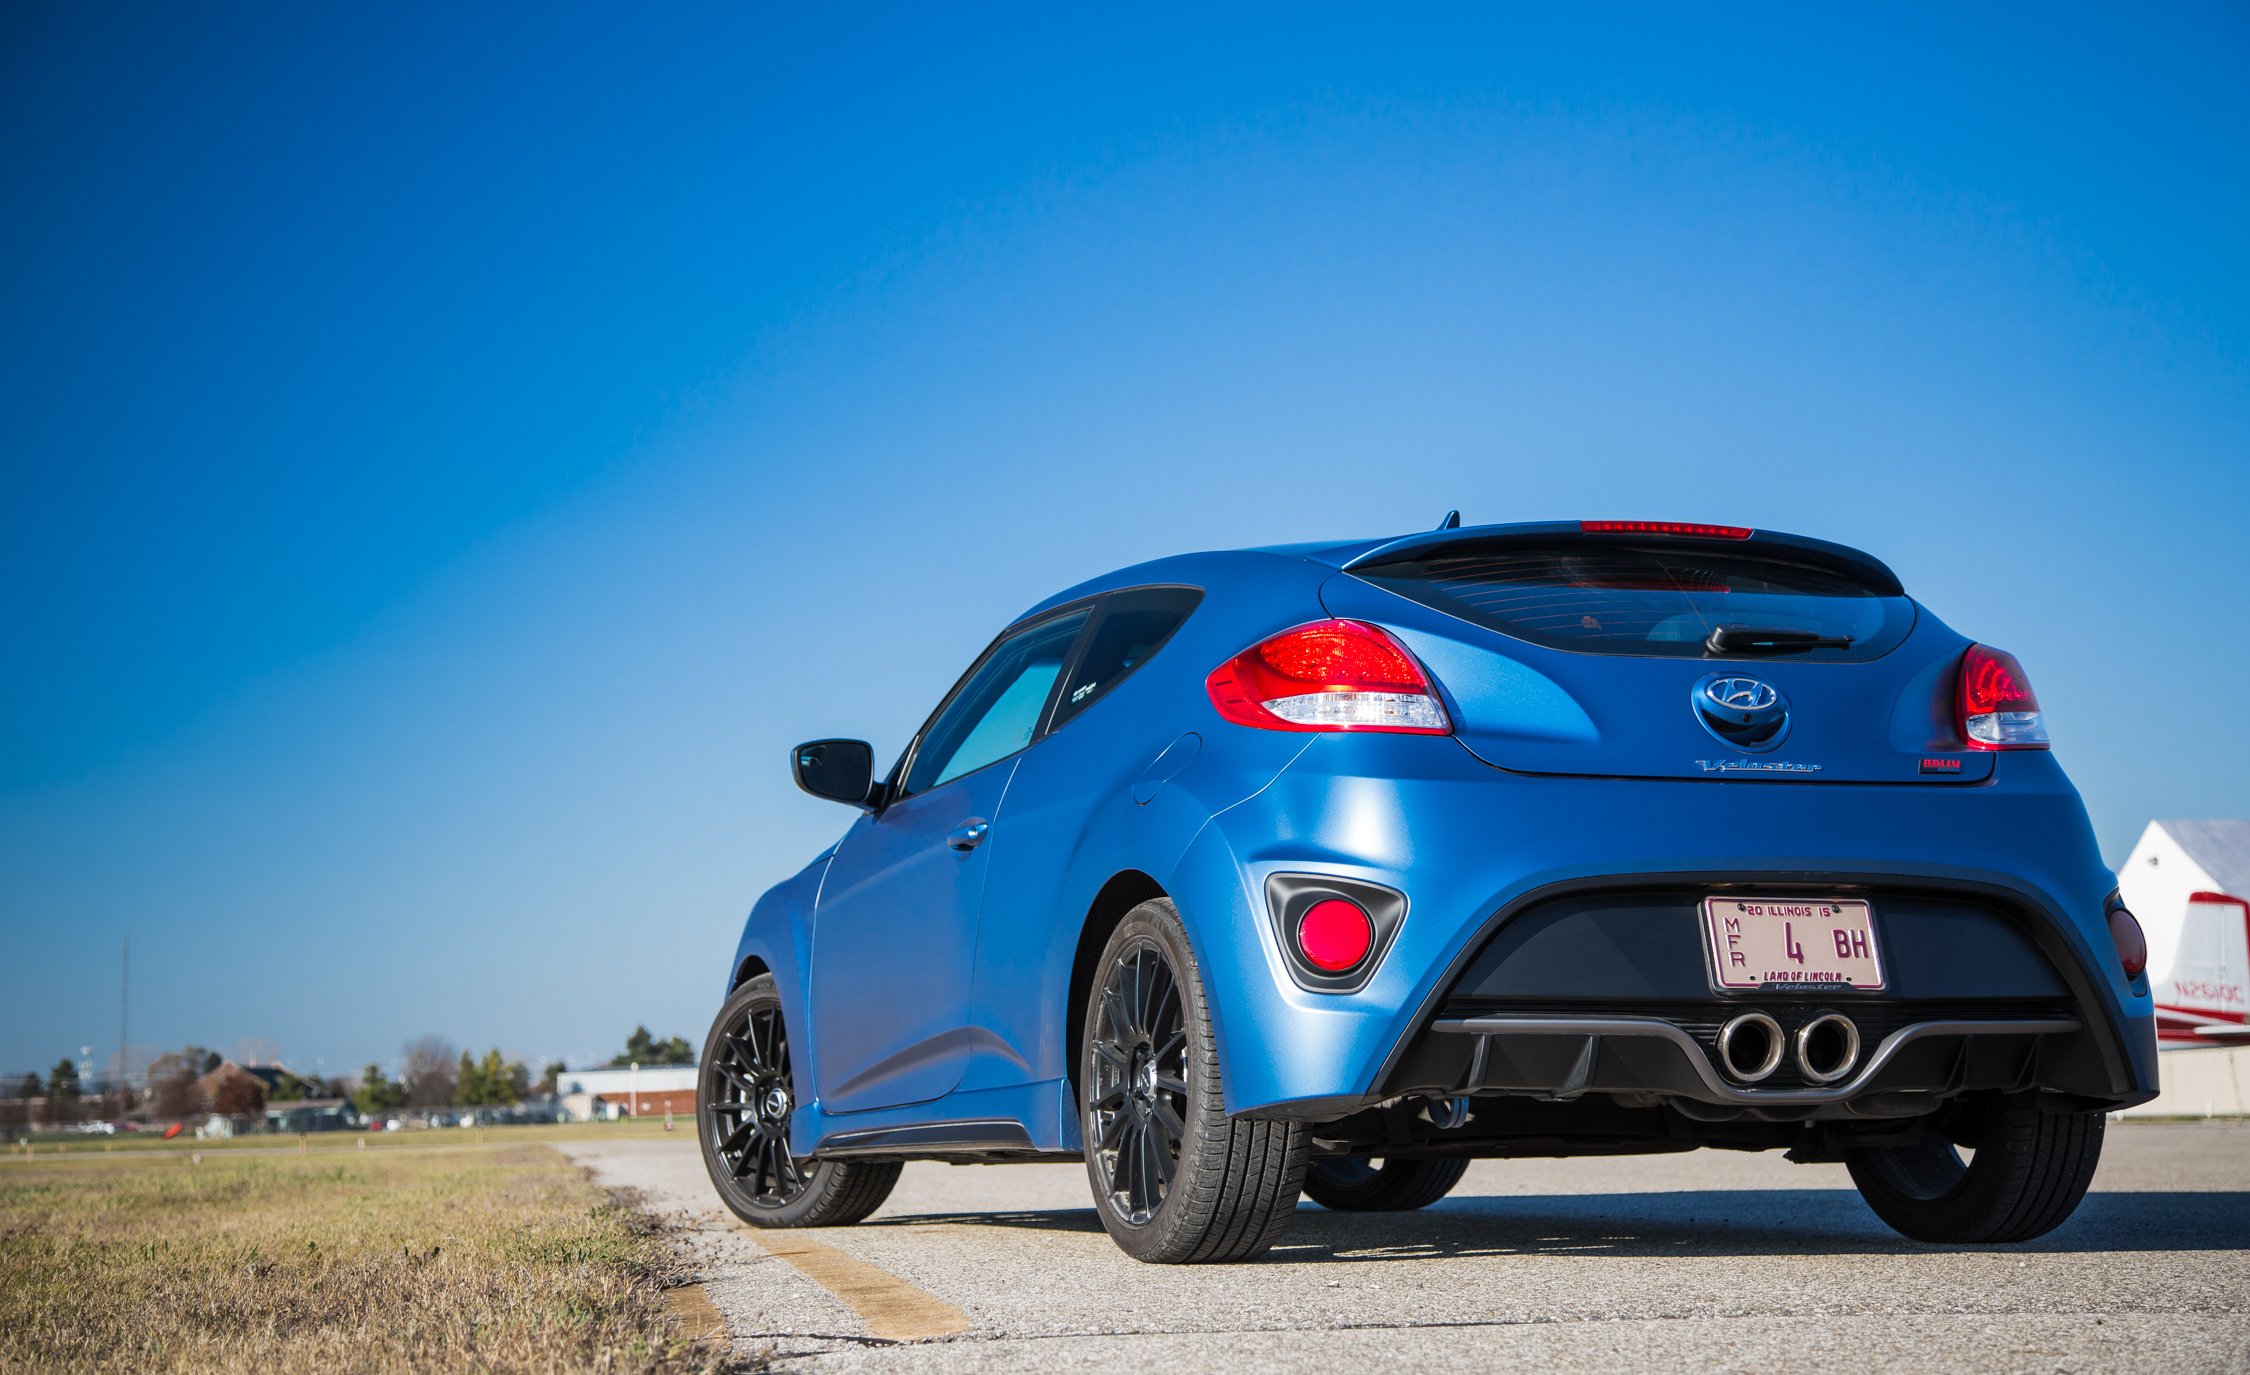 2016 Hyundai Veloster Turbo Rally Edition Exterior Rear and Side